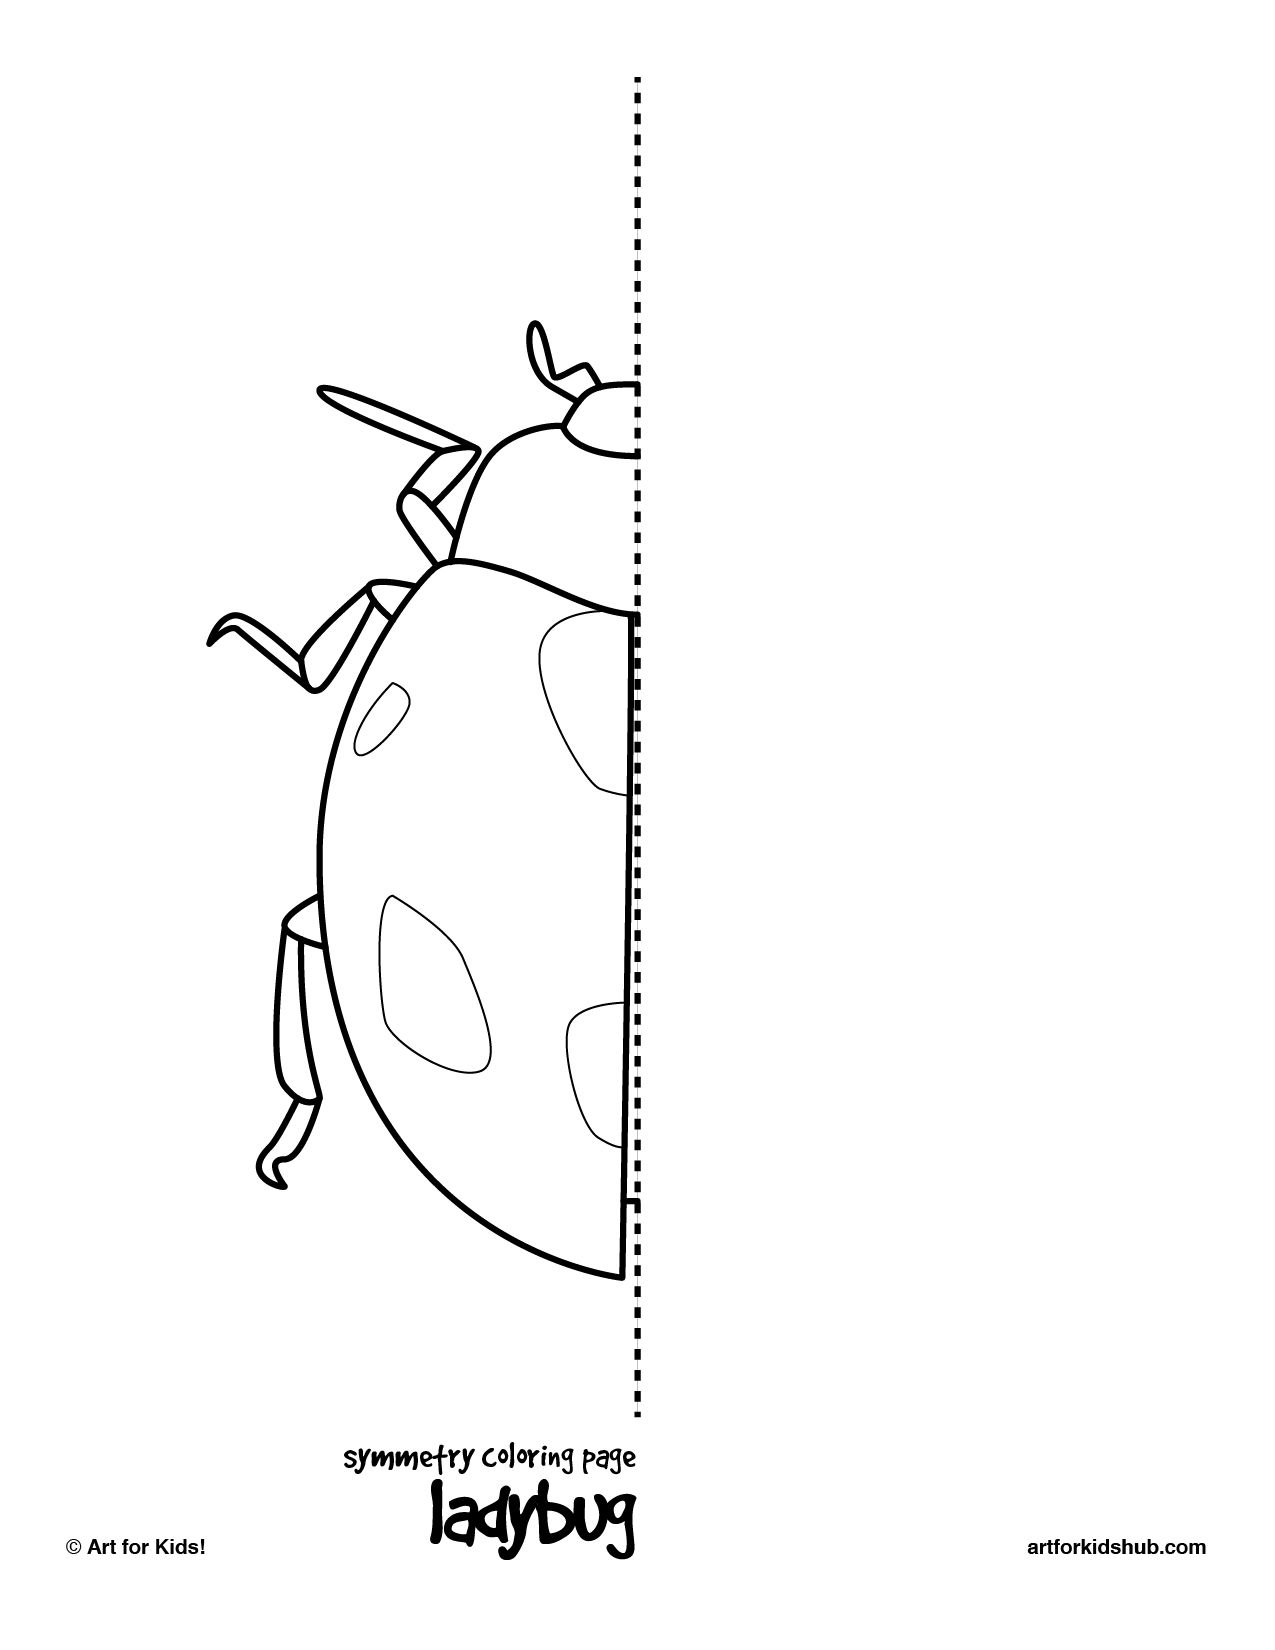 symmetry coloring pages symmetrical coloring pages free printable online coloring symmetry pages